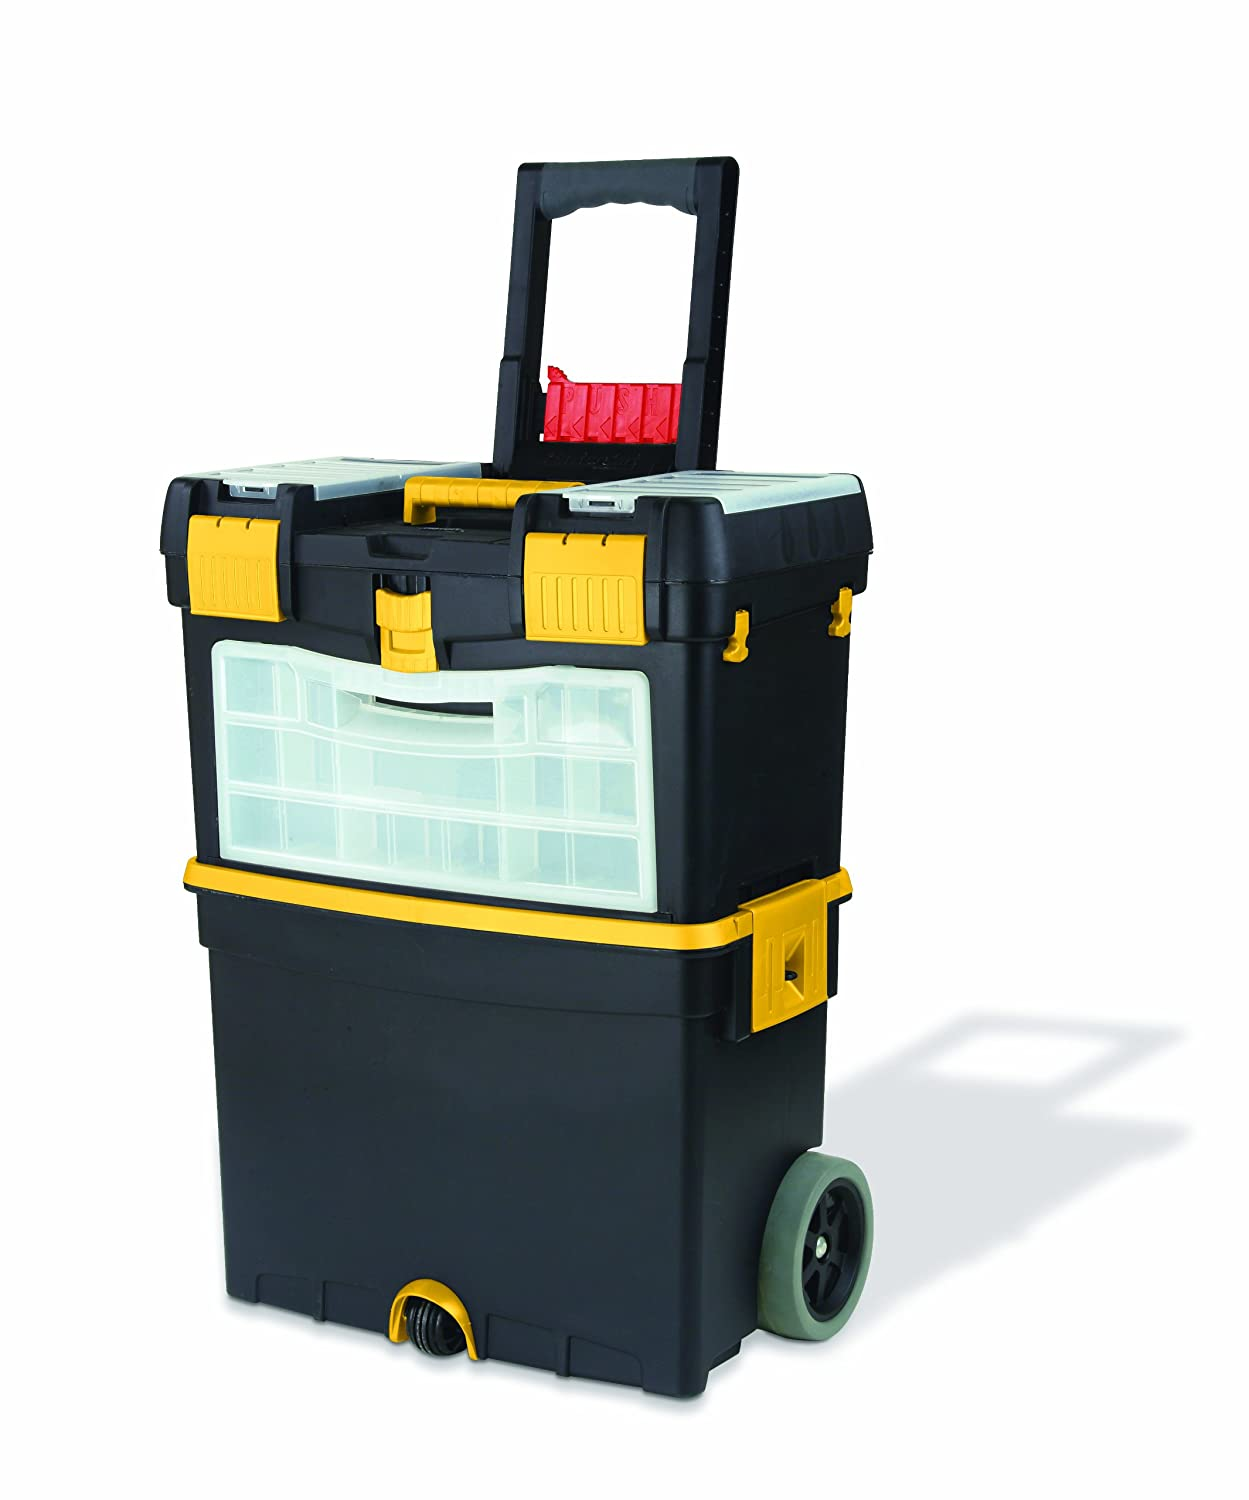 Keter Mastercart 18.1 X 33.1 X 10.8 In. Multiple Storage Plastic Portable  Tool Cart   Toolboxes   Amazon.com